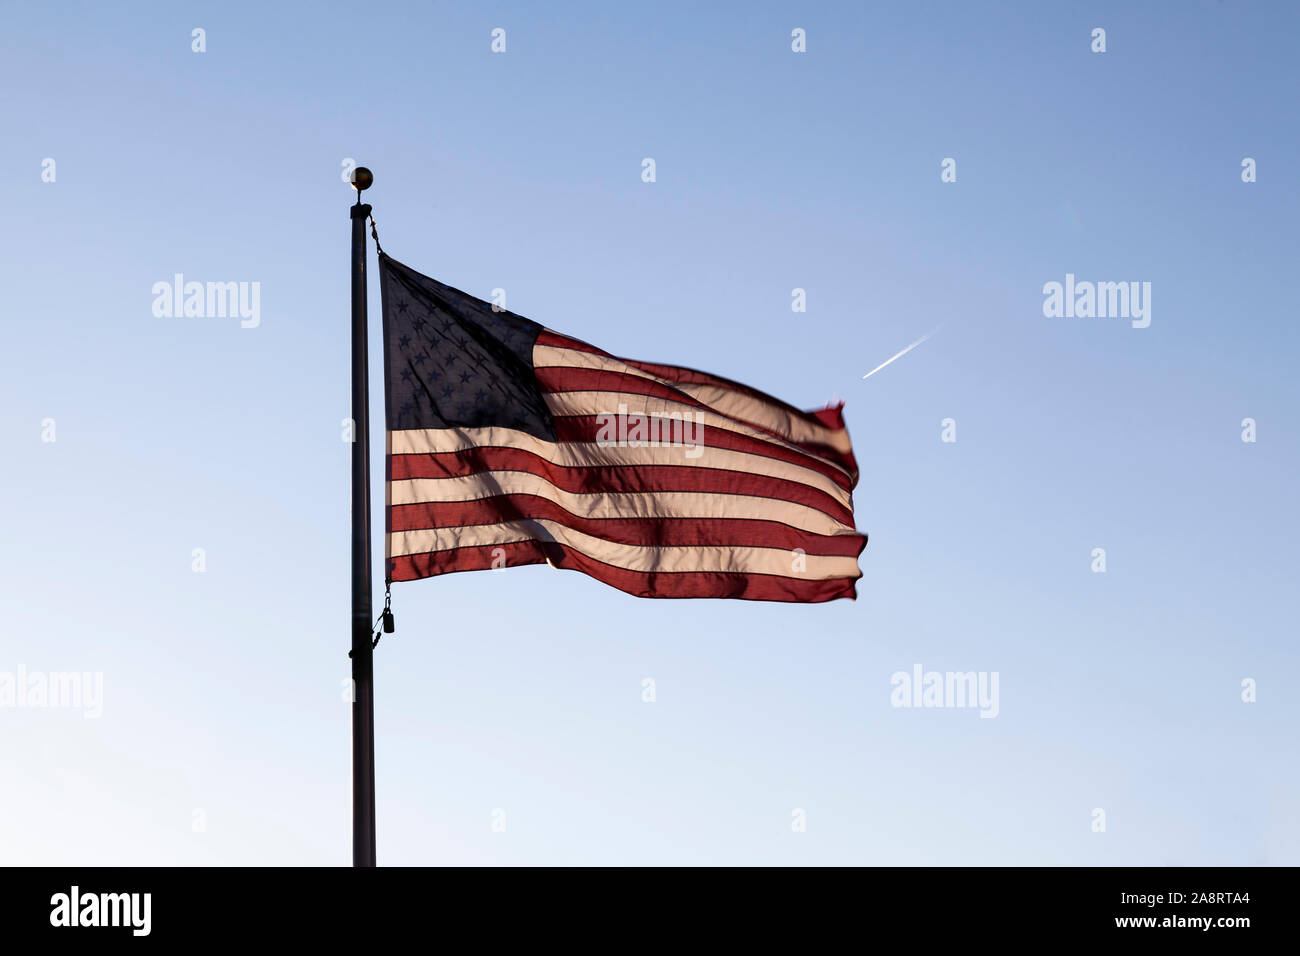 USA Flag Flying On Flagpole Backlit In Blue Sky With Jet Stream In Distance Stock Photo